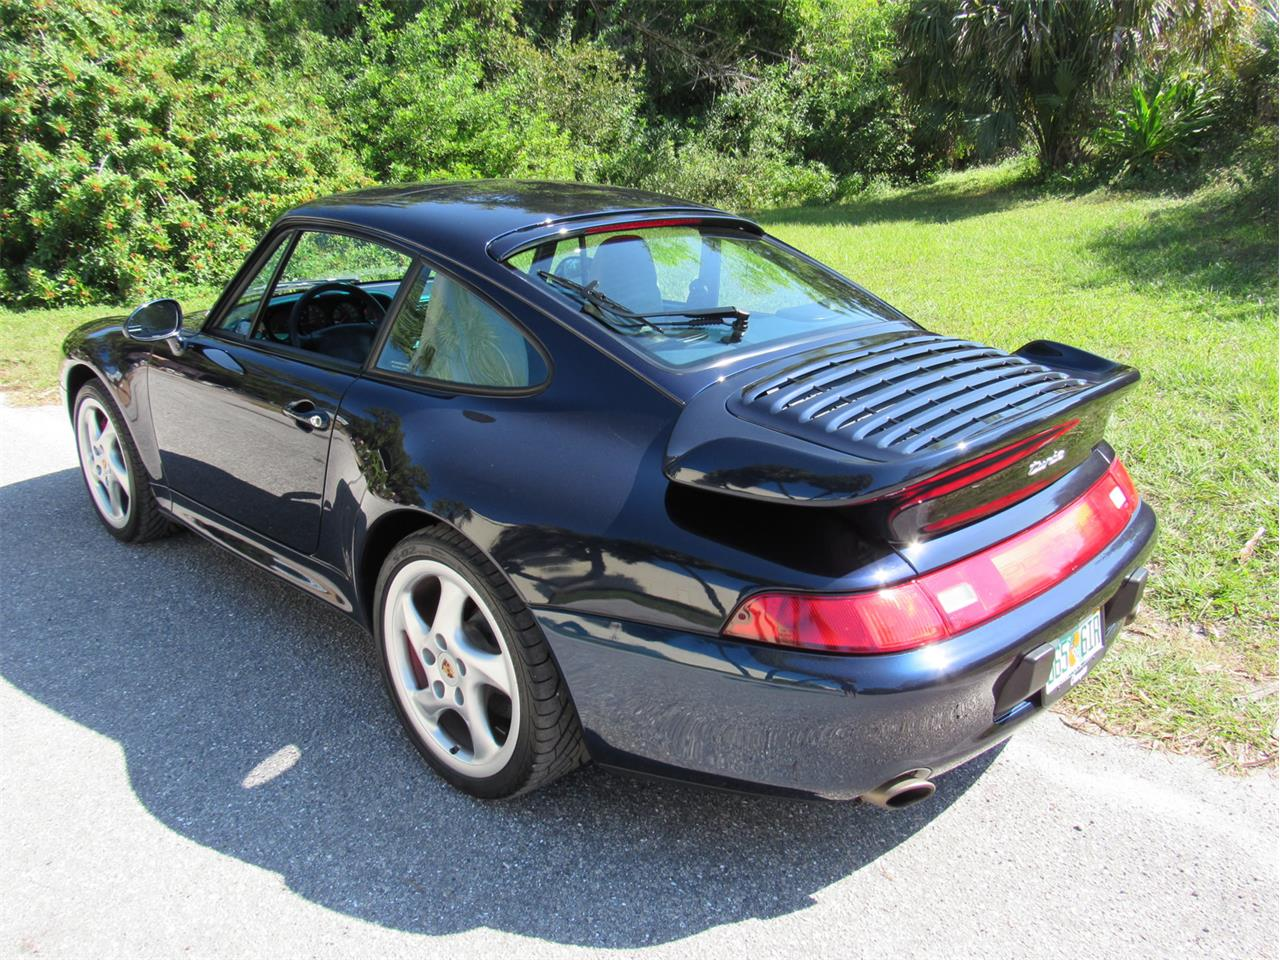 Large Picture of '96 Porsche 993/911 Carrera Turbo located in Sarasota Florida - $209,900.00 - MCL2